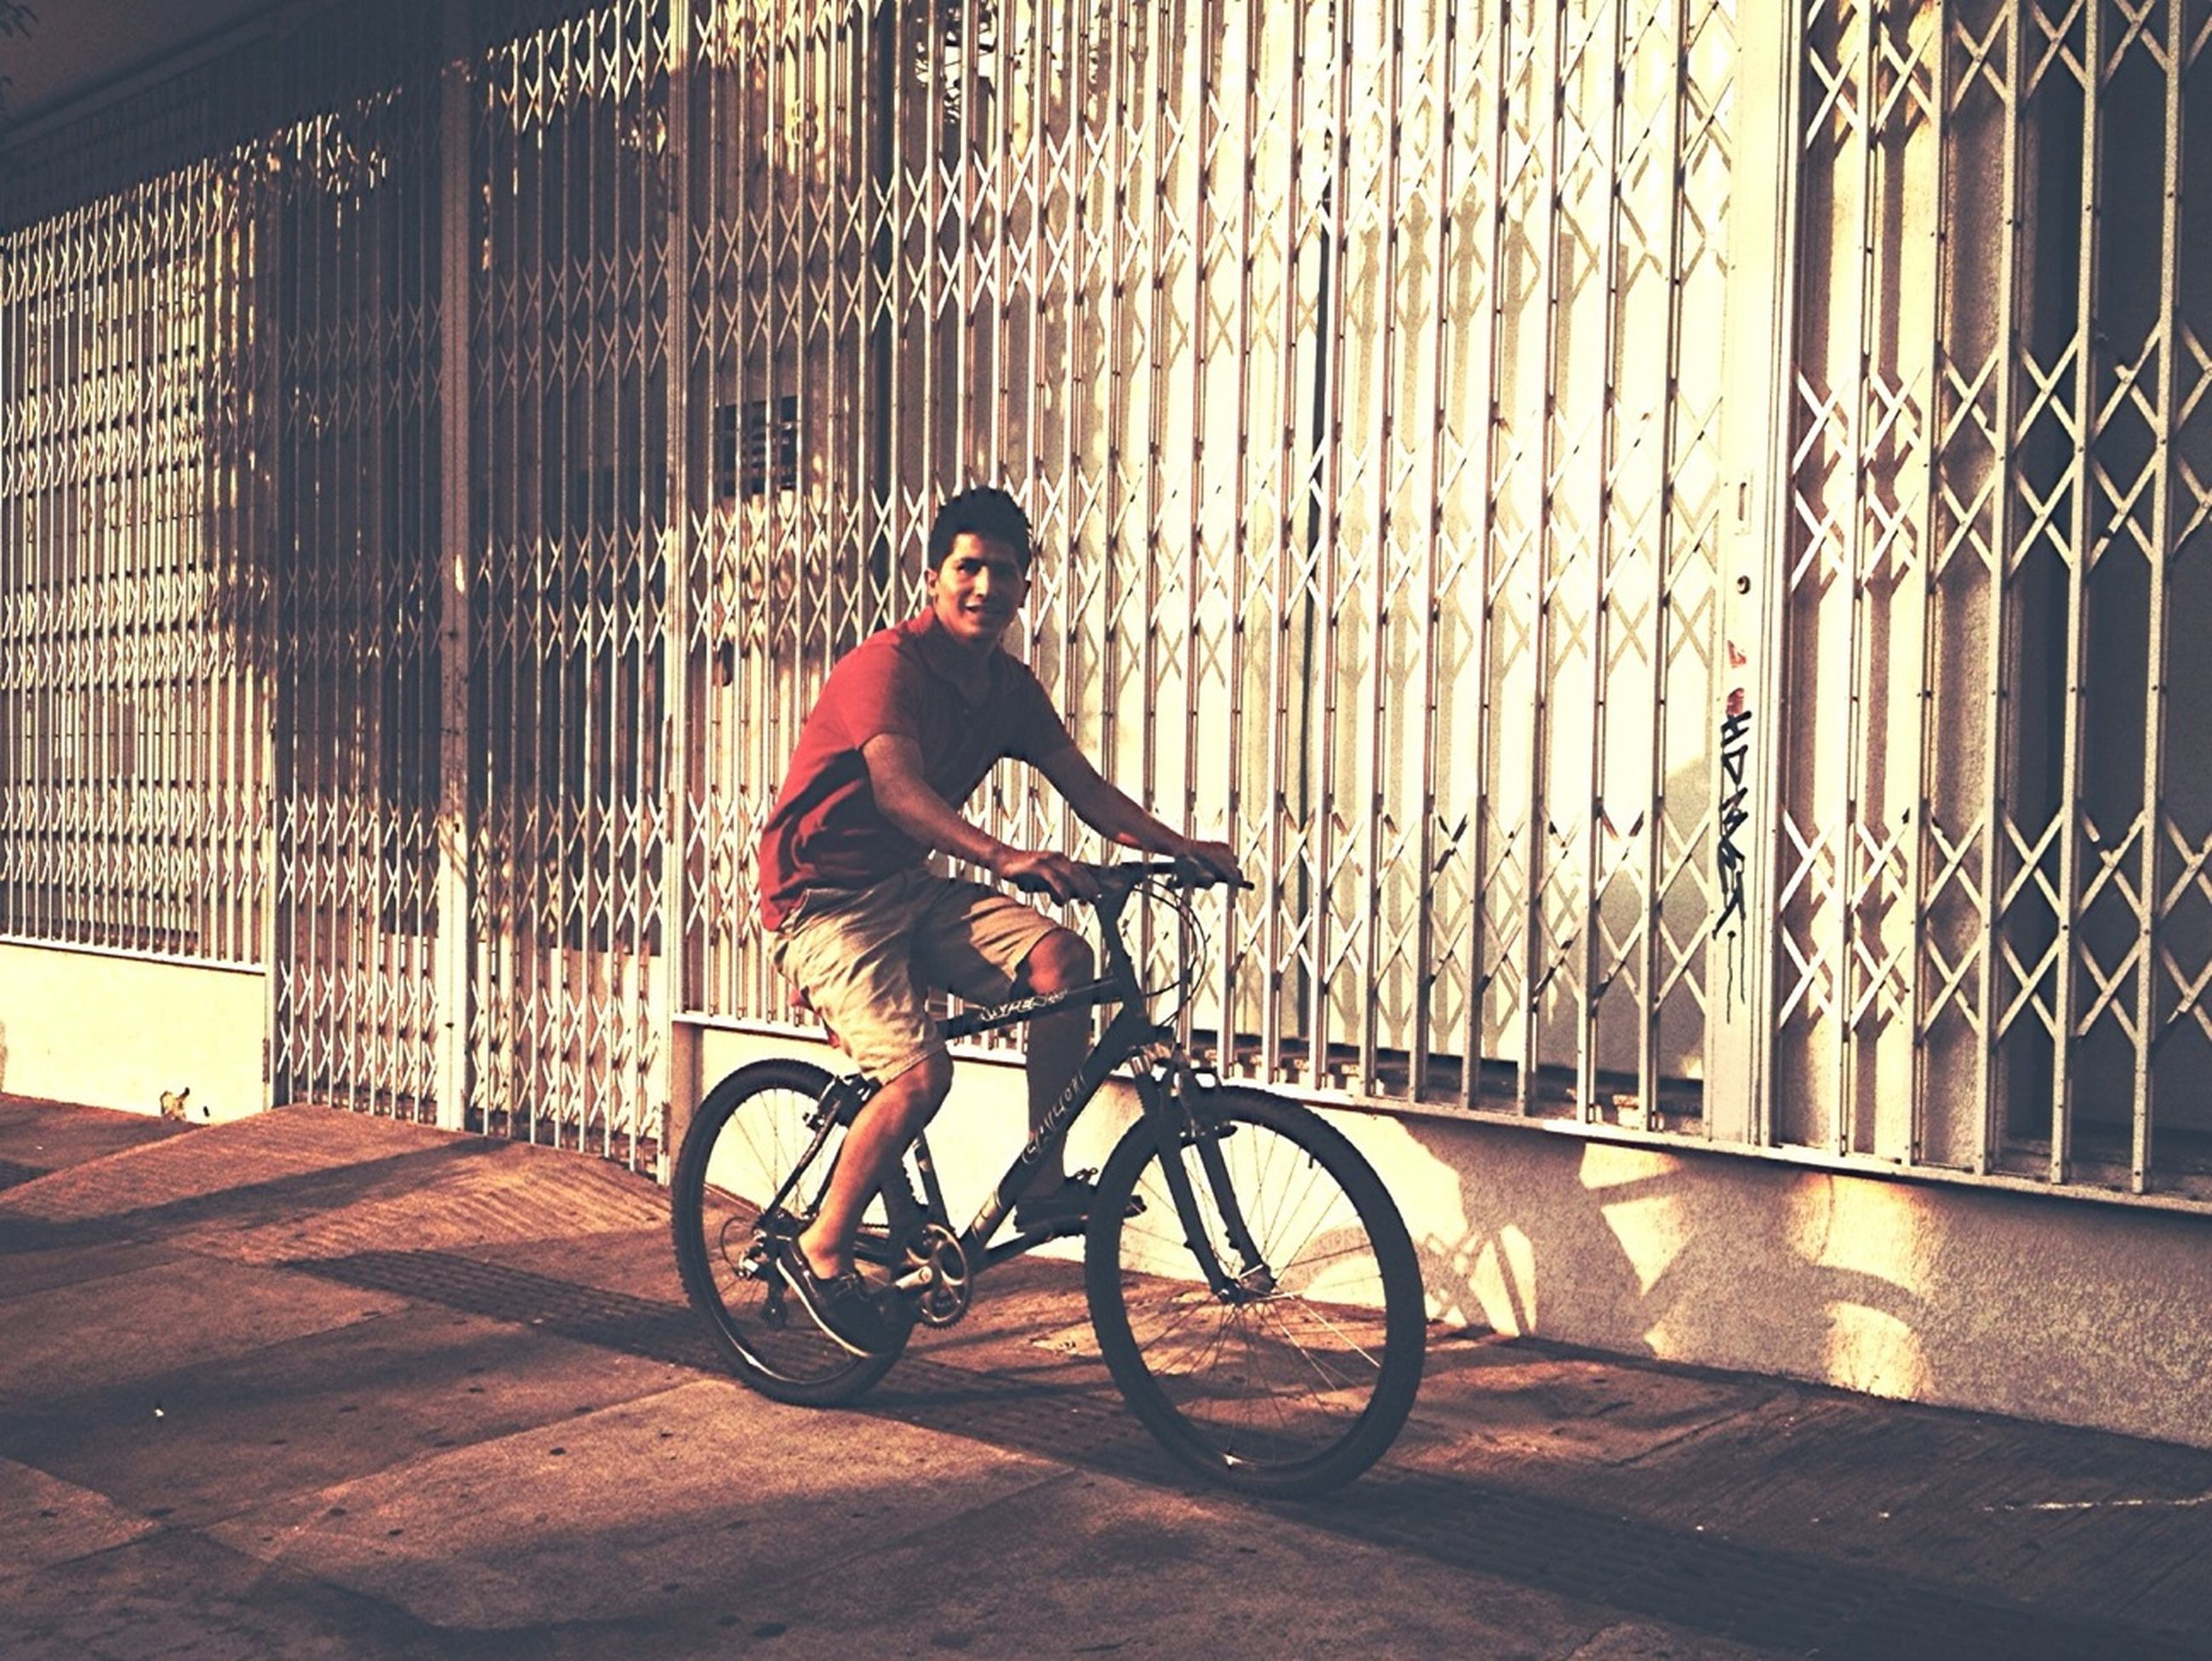 bicycle, transportation, mode of transport, land vehicle, architecture, building exterior, built structure, full length, riding, side view, stationary, parking, parked, leaning, street, lifestyles, cycling, city